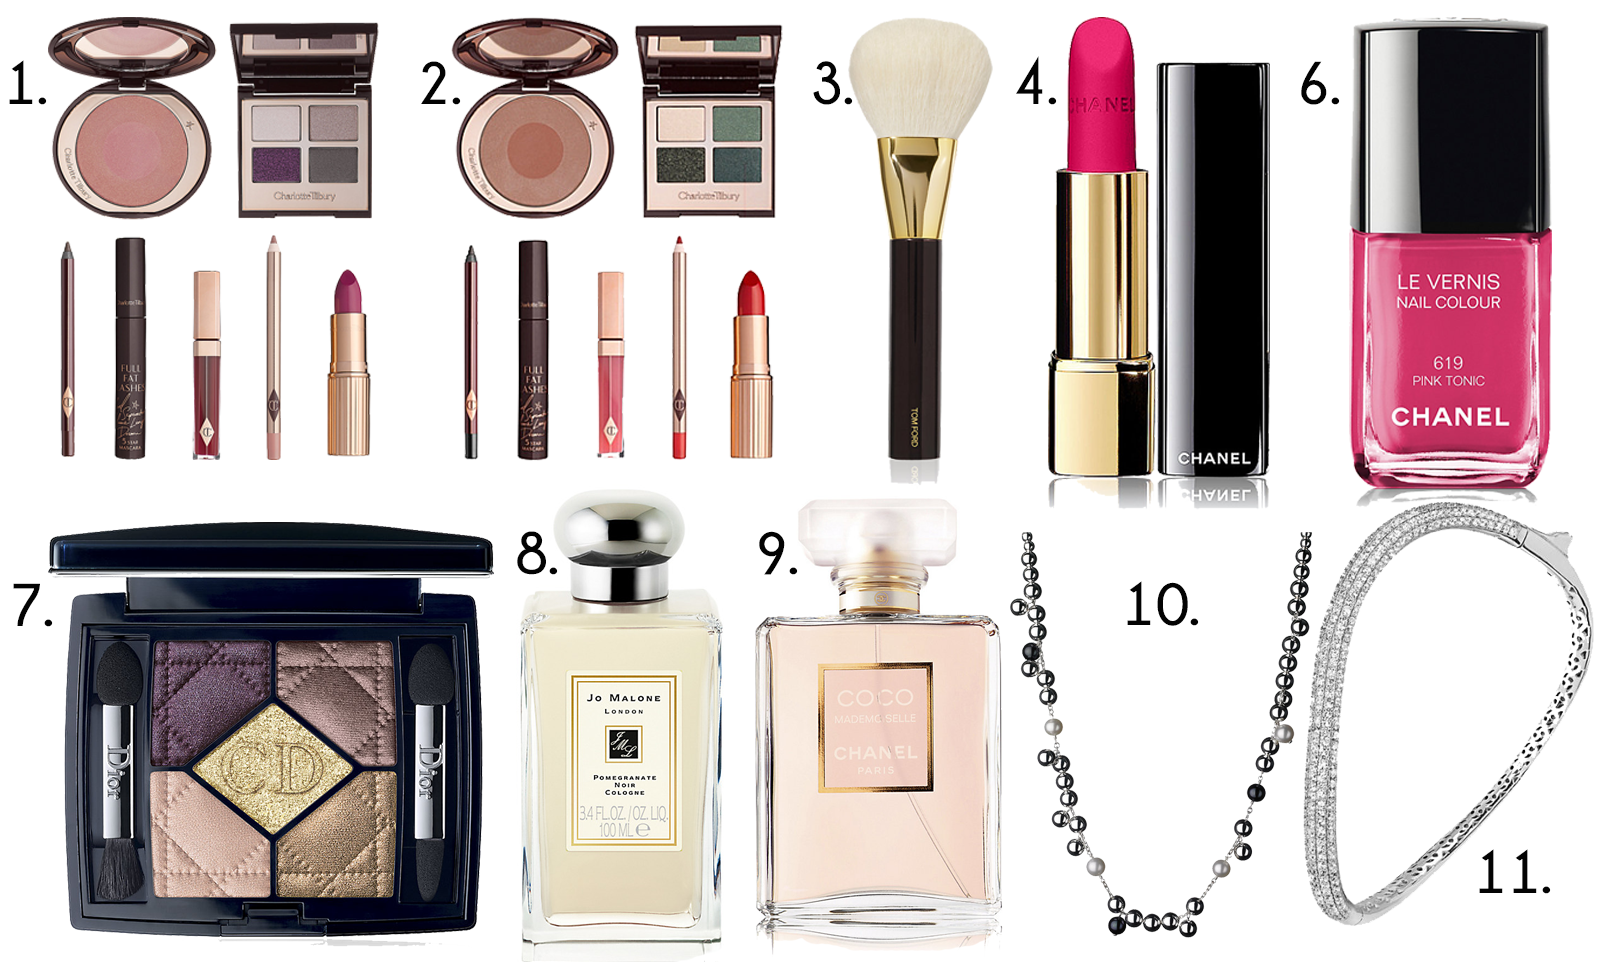 14165c3fa6f0 The Beauty Scoop!: Valentine's Day Gift Suggestions: Luxury Beauty ...